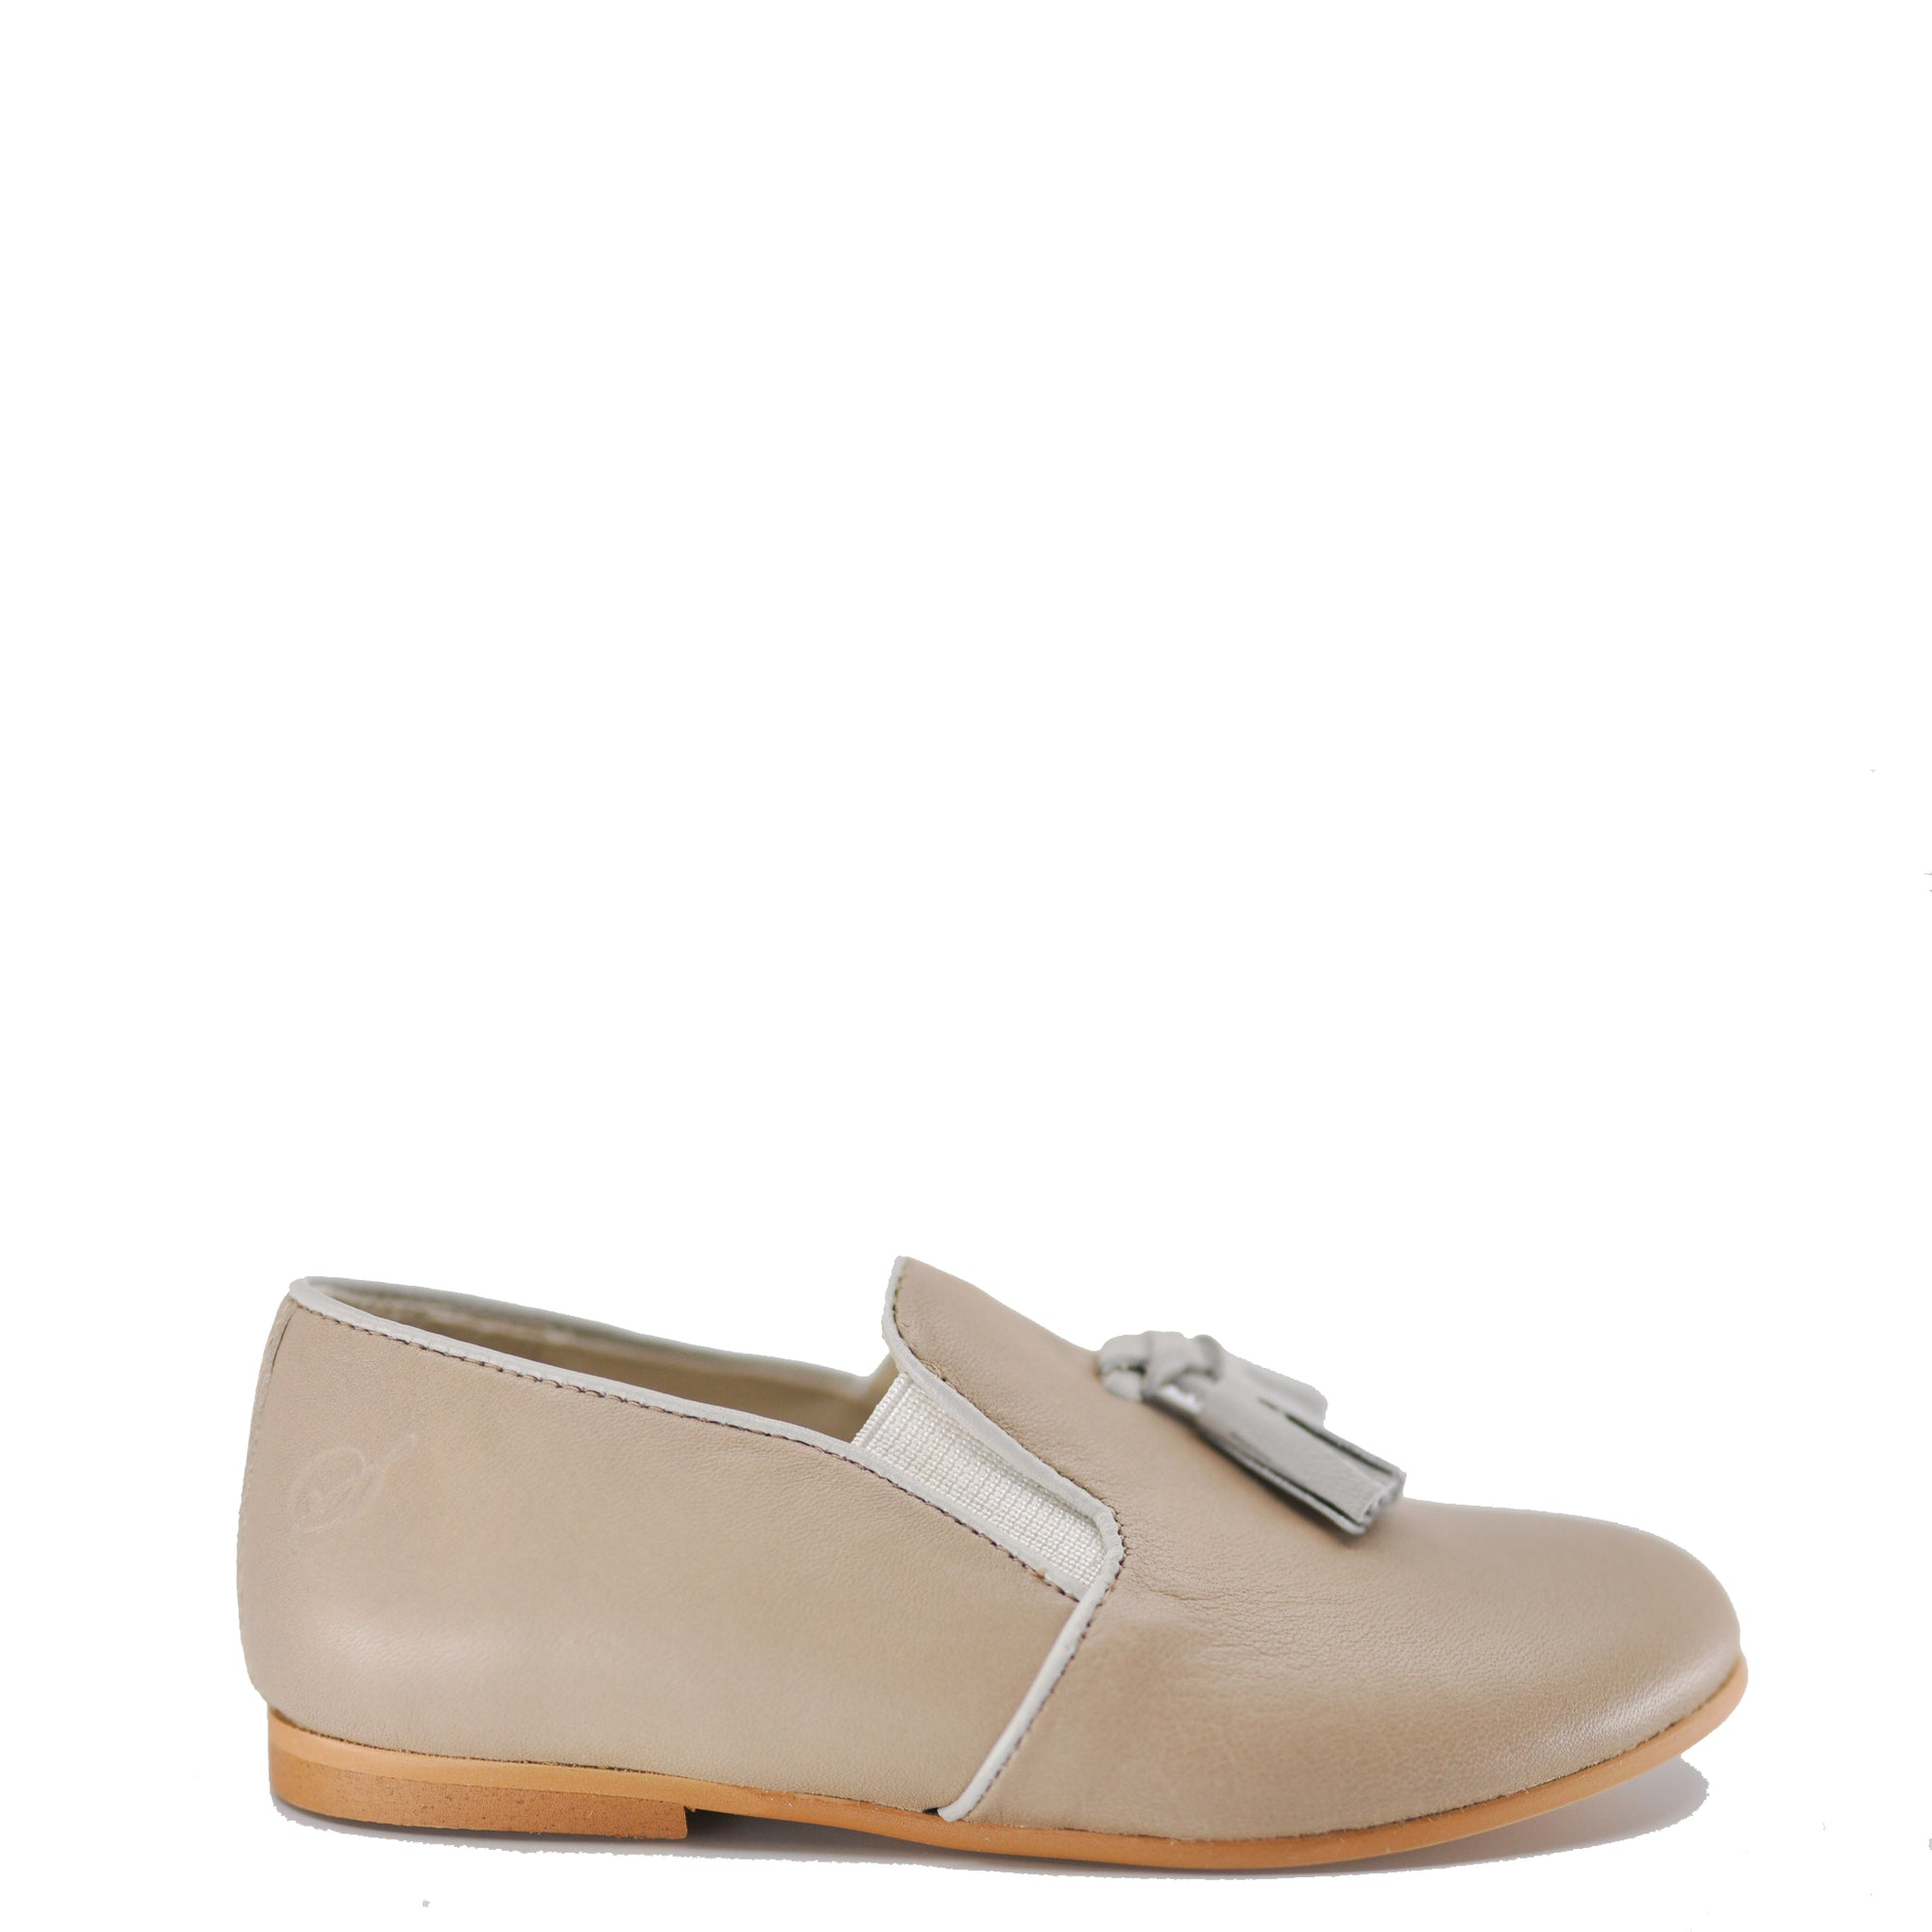 Sonatina Taupe Tassel Slip On Loafer-Tassel Children Shoes